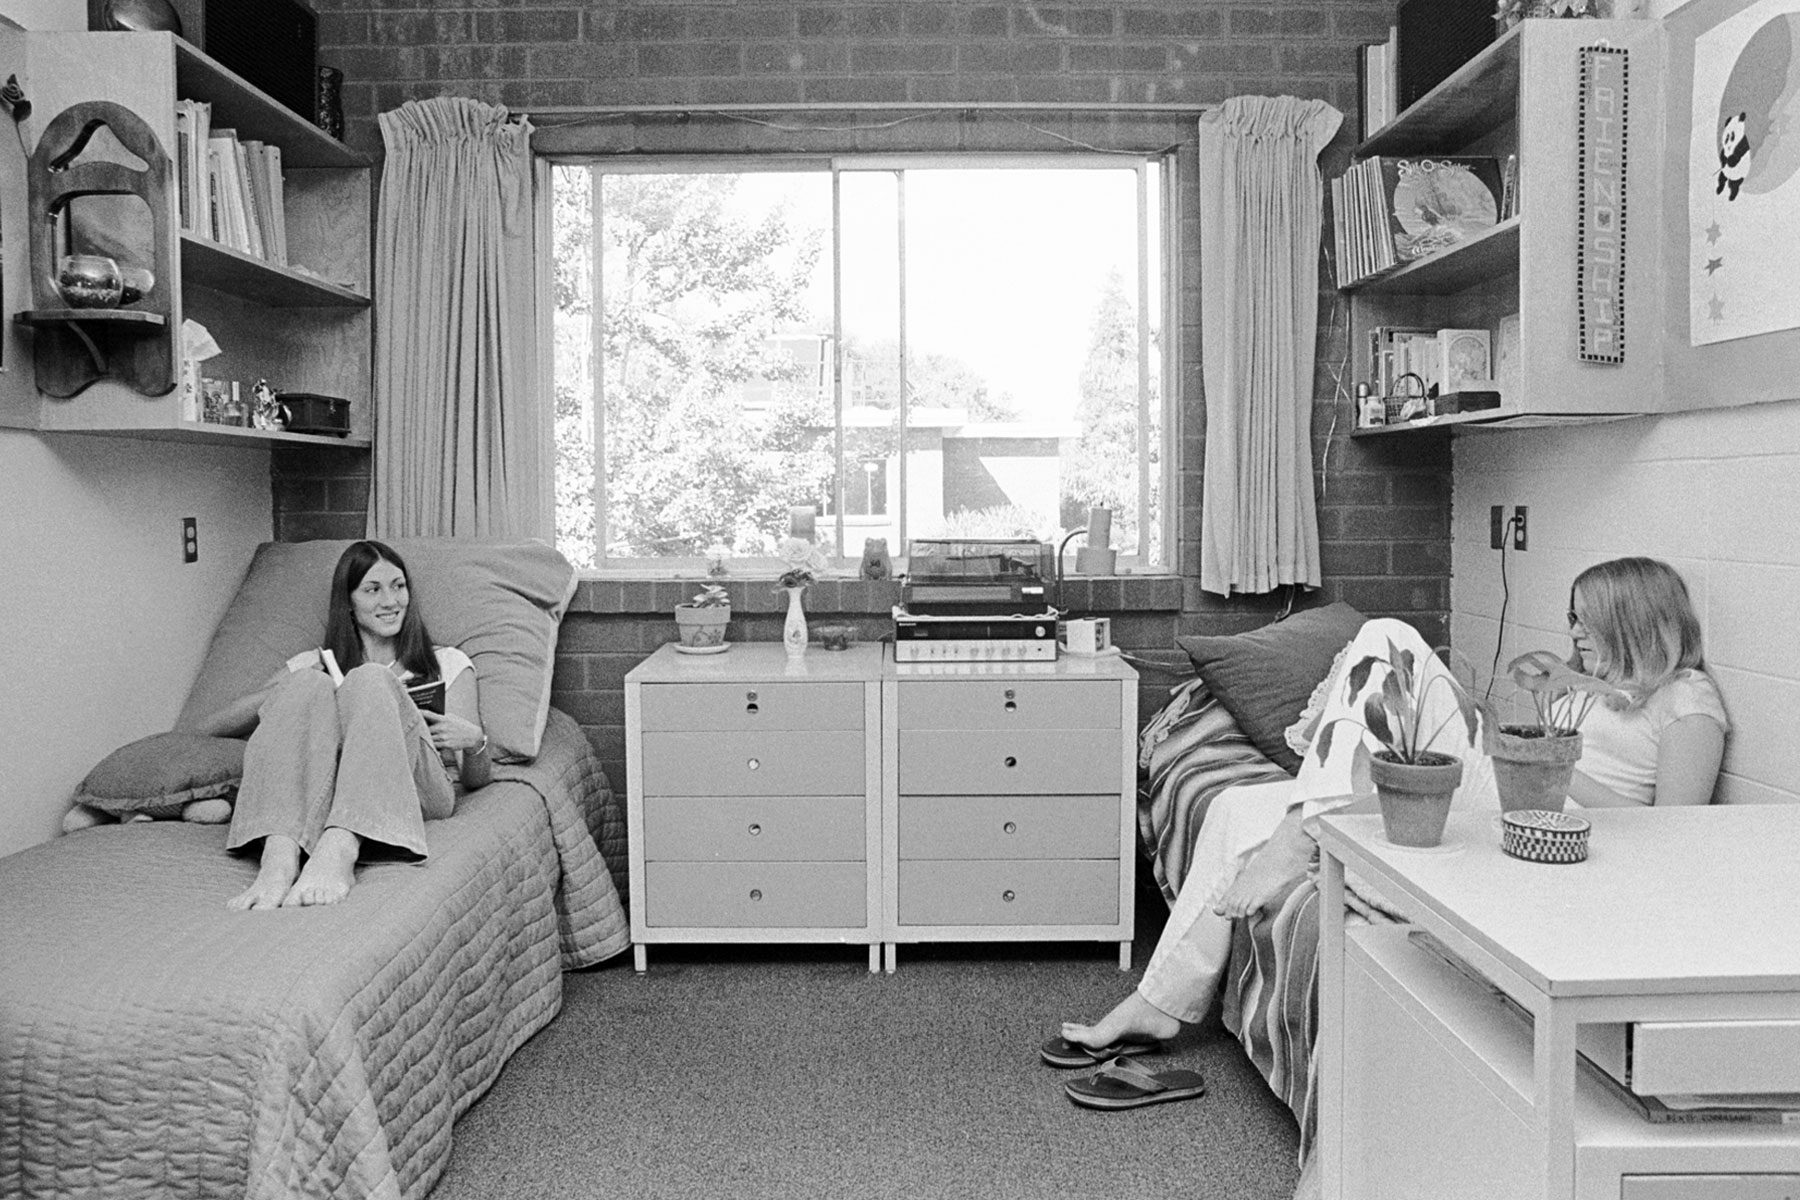 SJSU students at Washburn Hall in the 1970s.